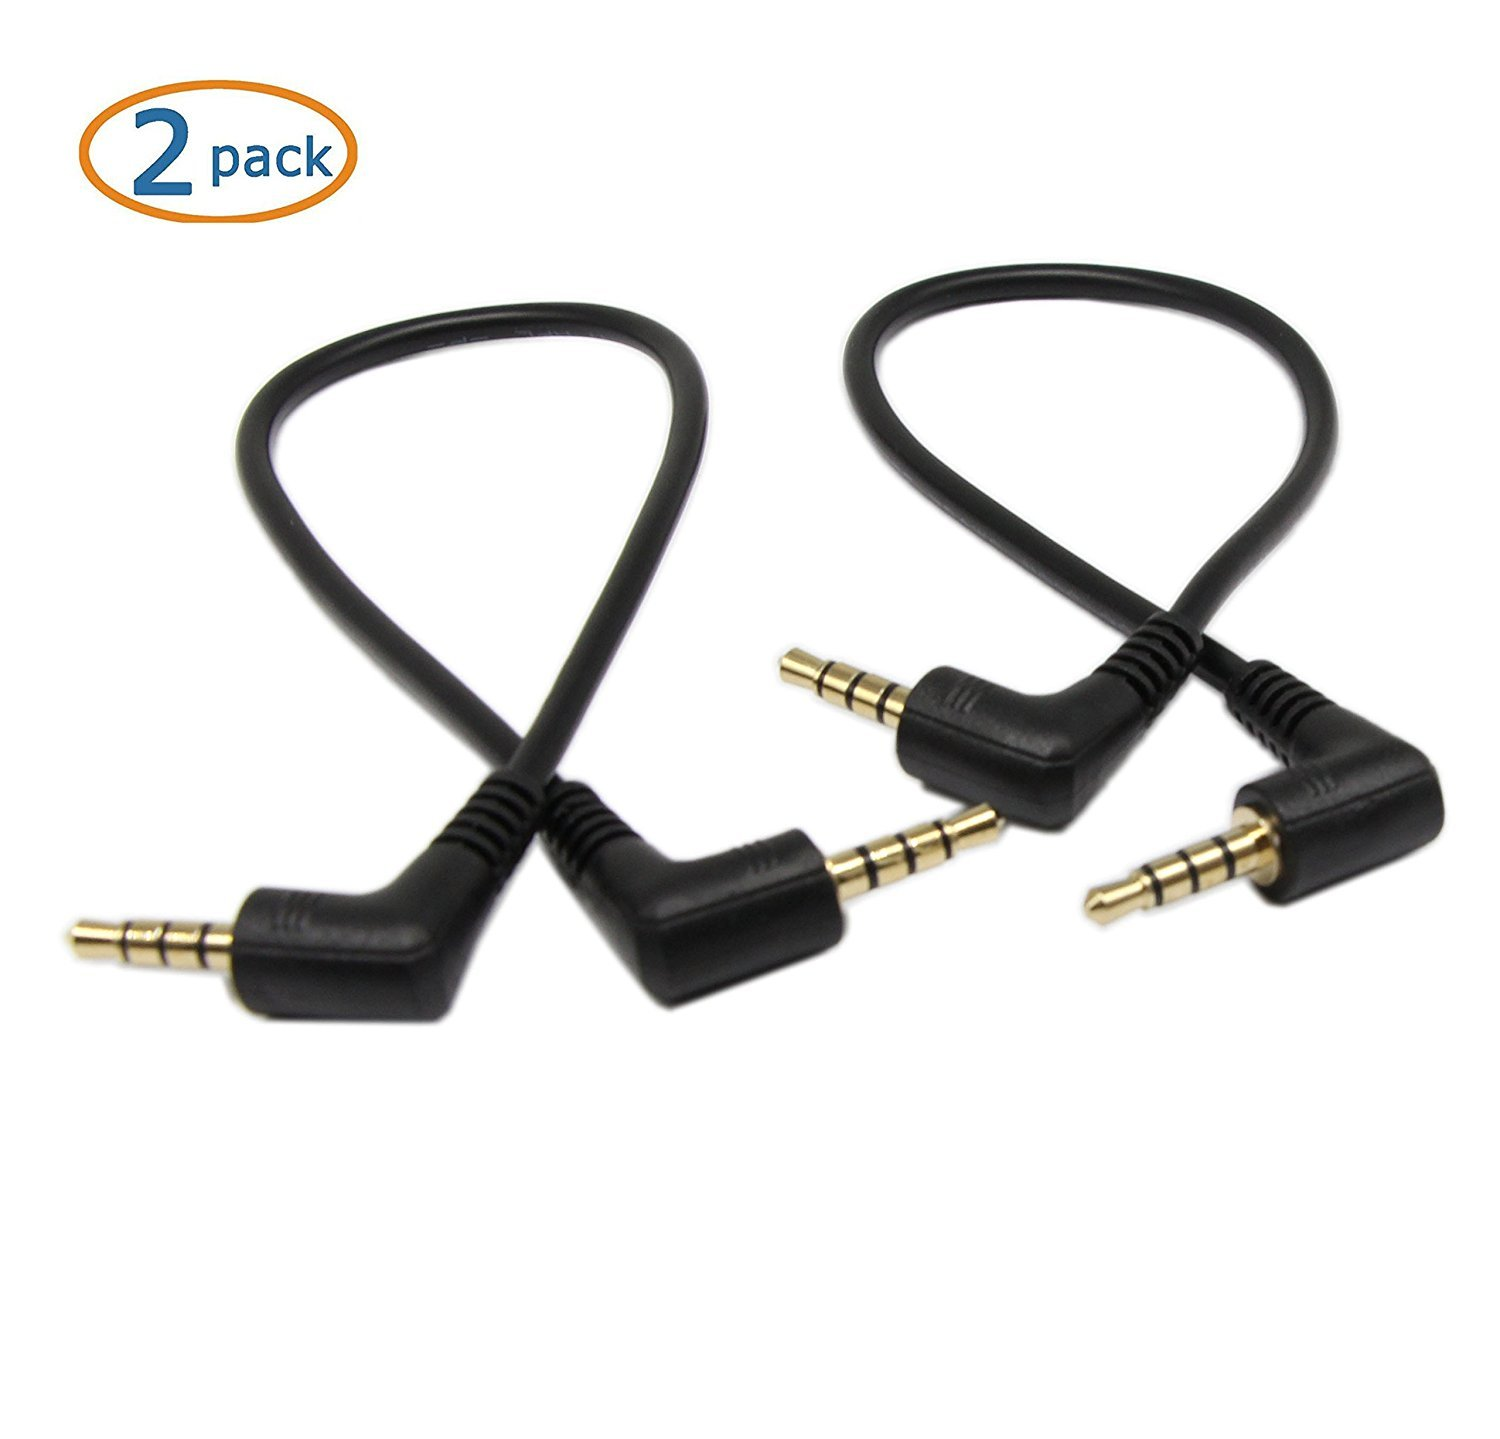 2-PACK 4-P,9inch 3.5mm TRRS Cable,SinLoon iPad or Smartphones,Tablets,Players Microphone Gold Plated 90 Degree Right /& Left Angled 3.5mm Stereo 4-Pole male to male Auxiliary Audio Cable for iPhone